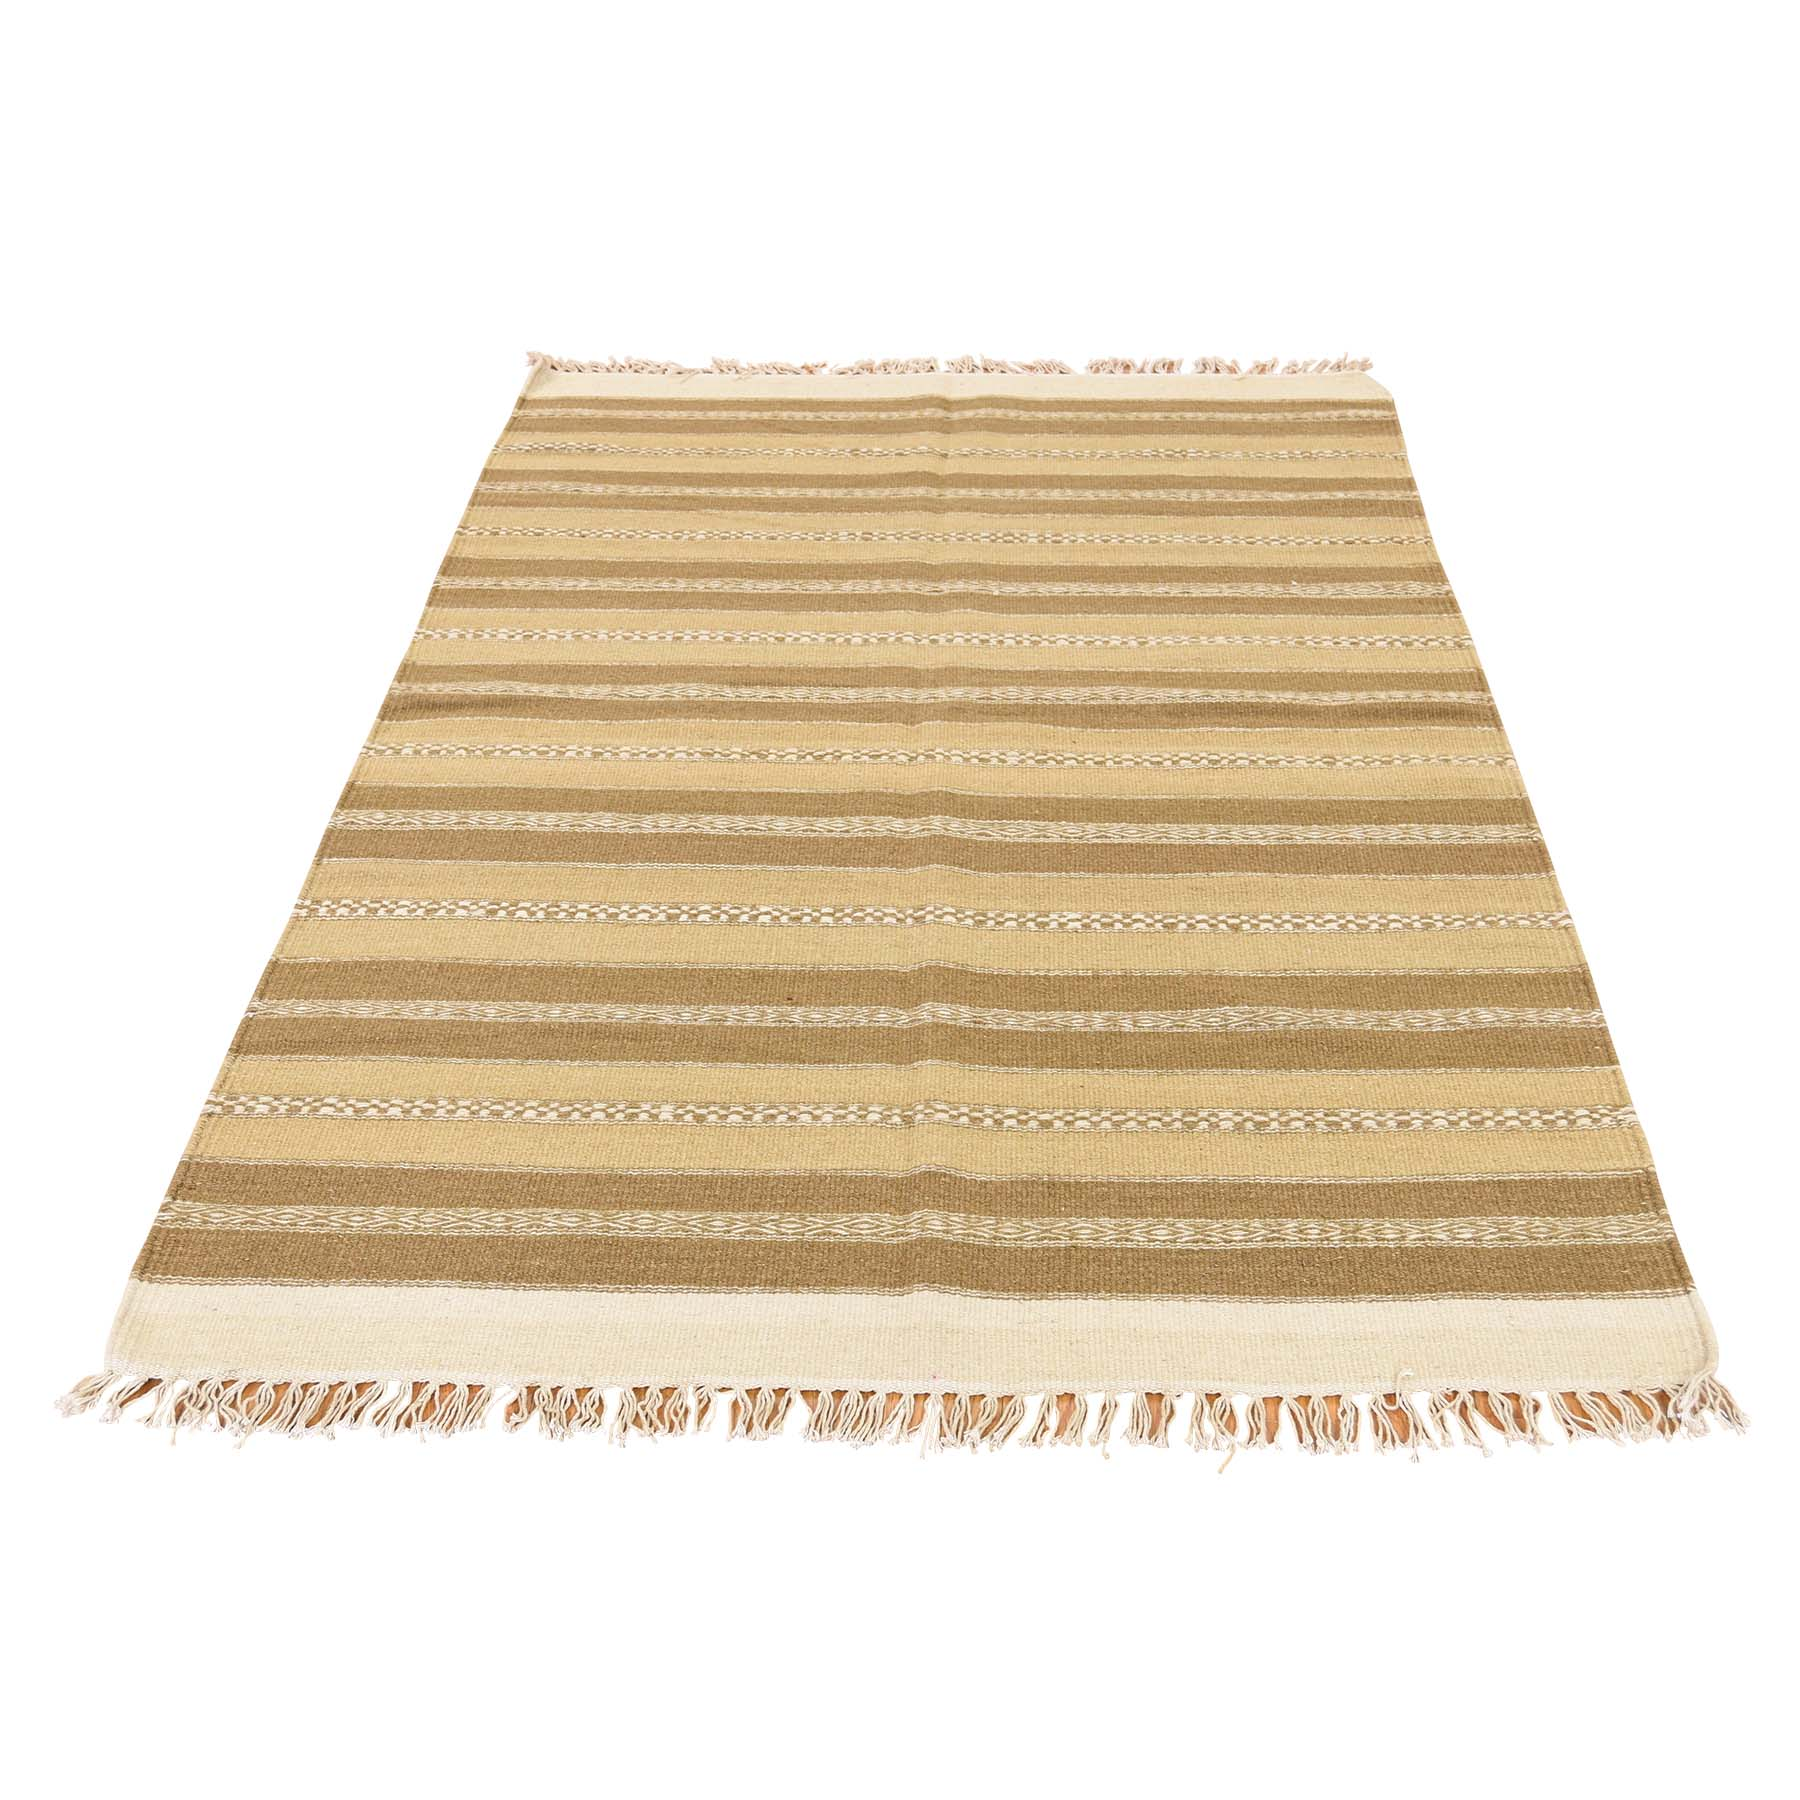 3'9''X6' Reversible Hand Woven Striped Durie Kilim Flat Weave Rug moac7980